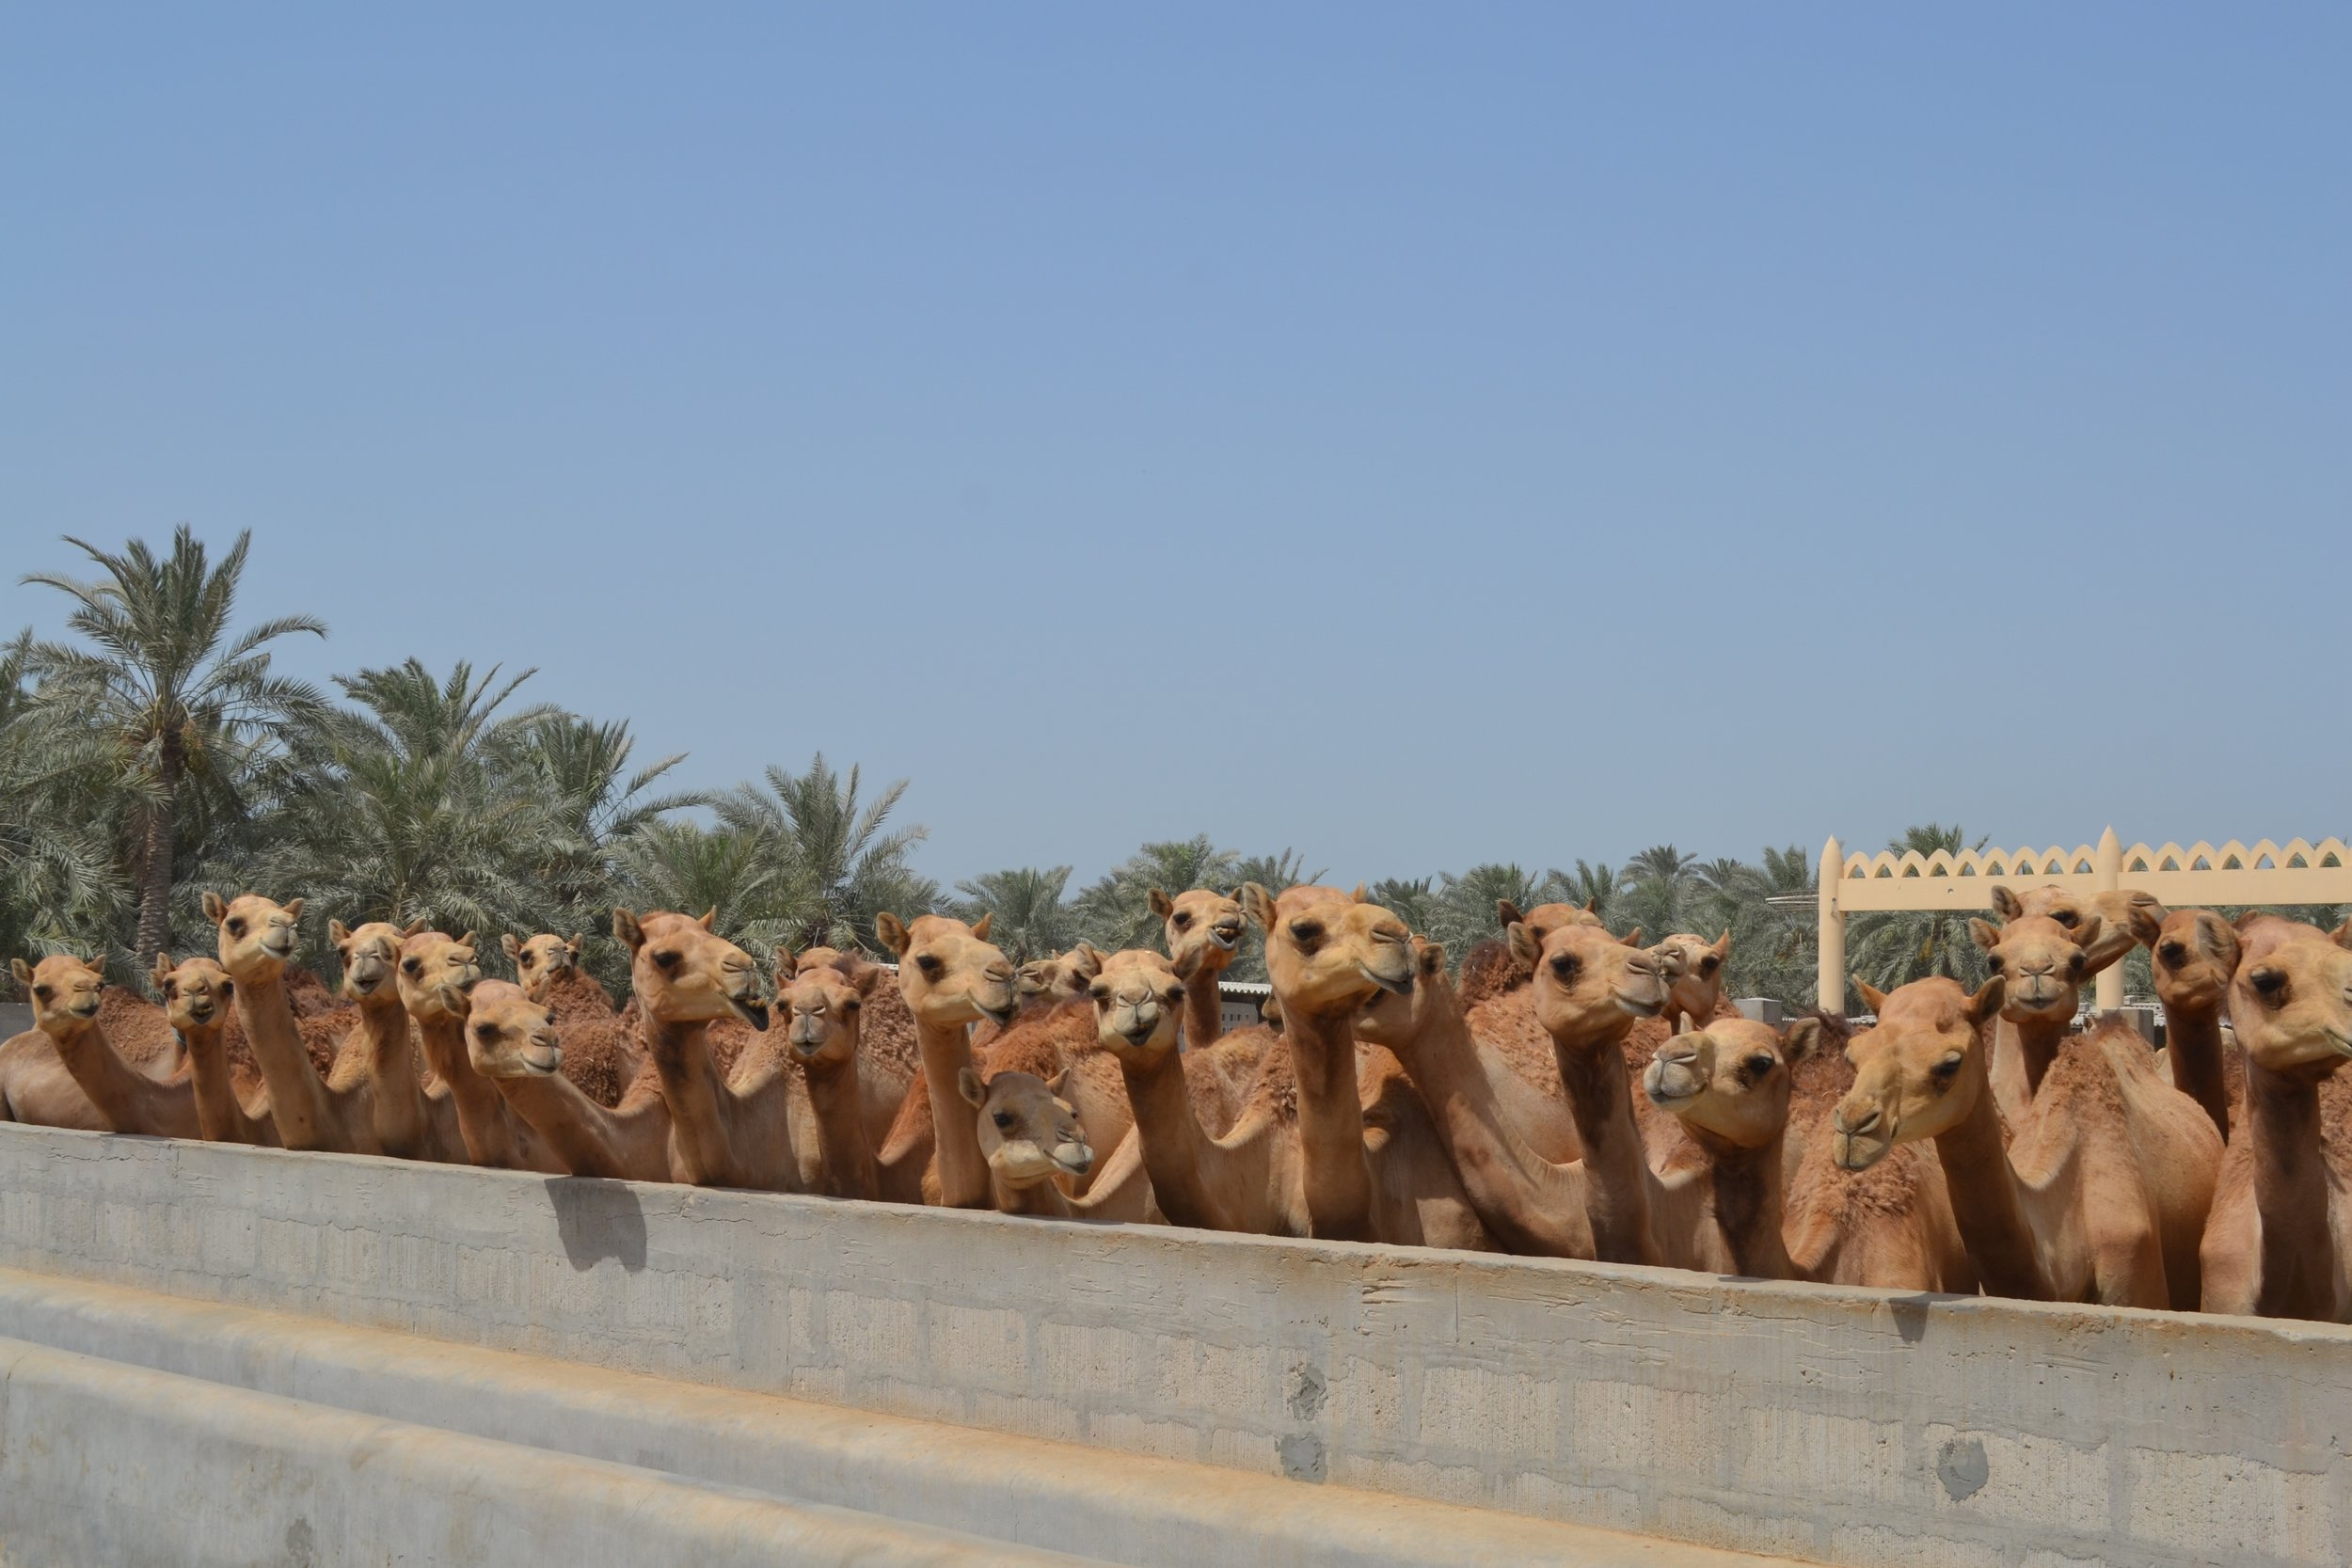 The Royal Camel Farm outside of Manama